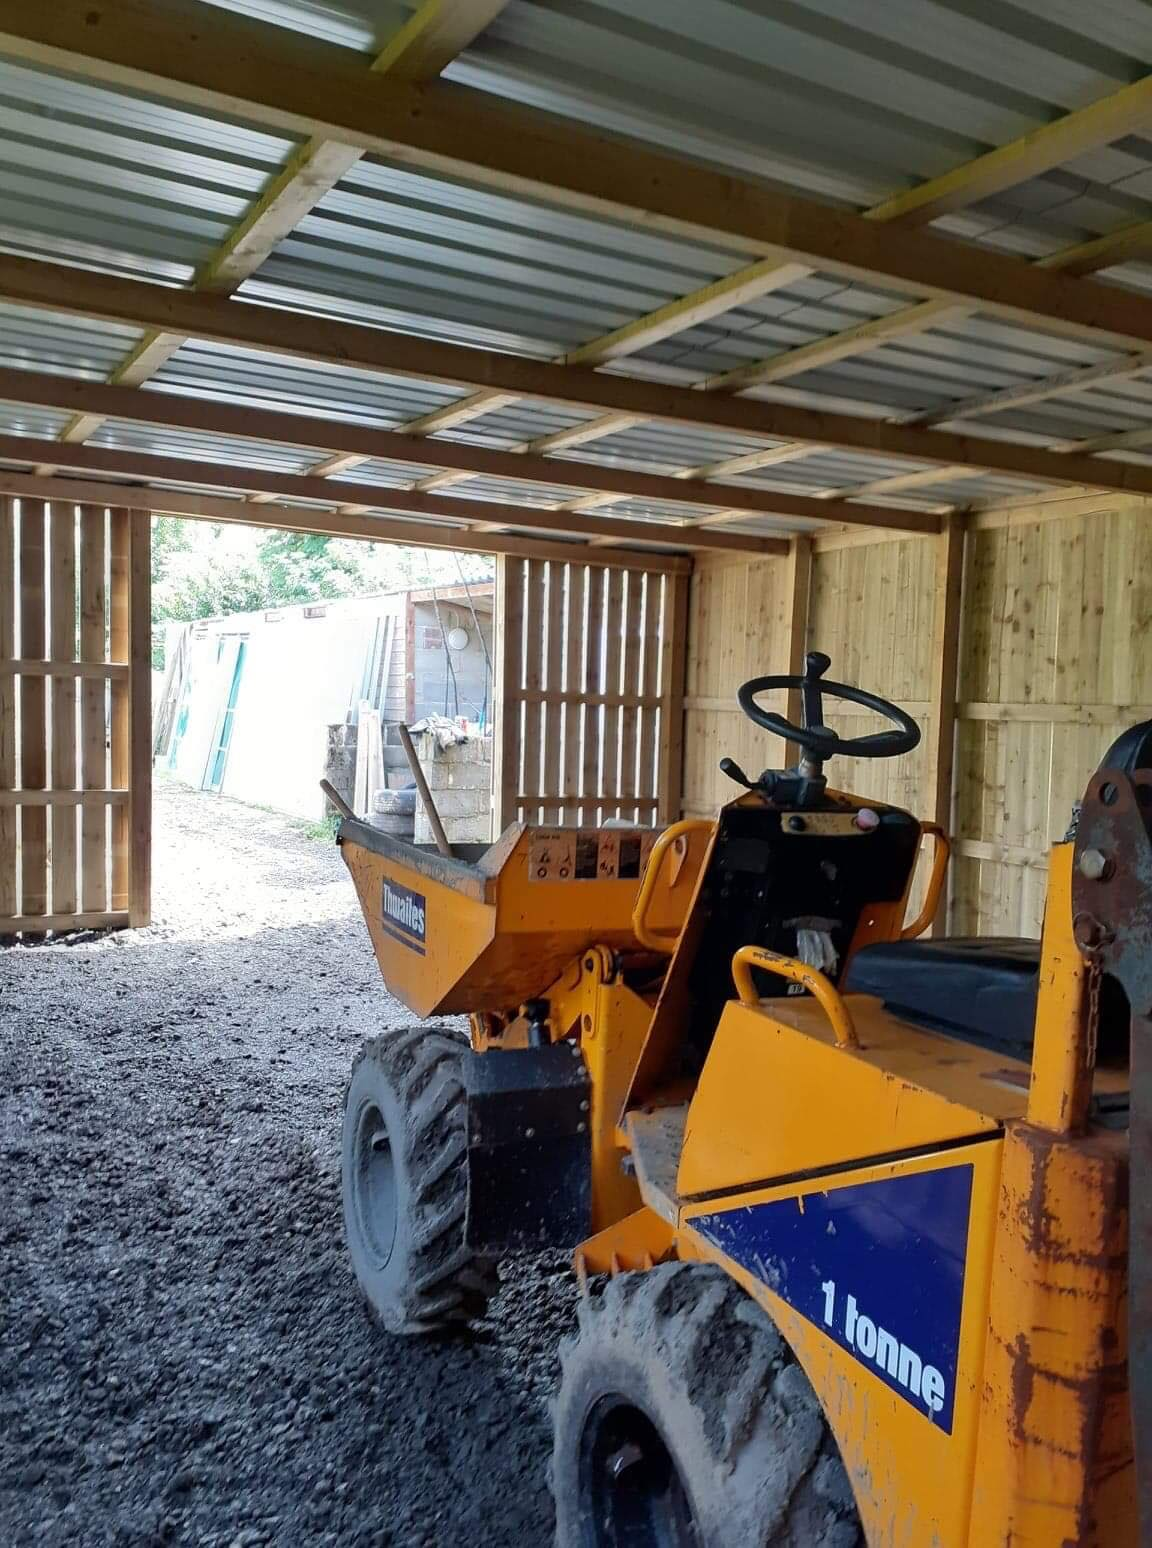 Looking out of the storage shed, mini dumper truck in shot.